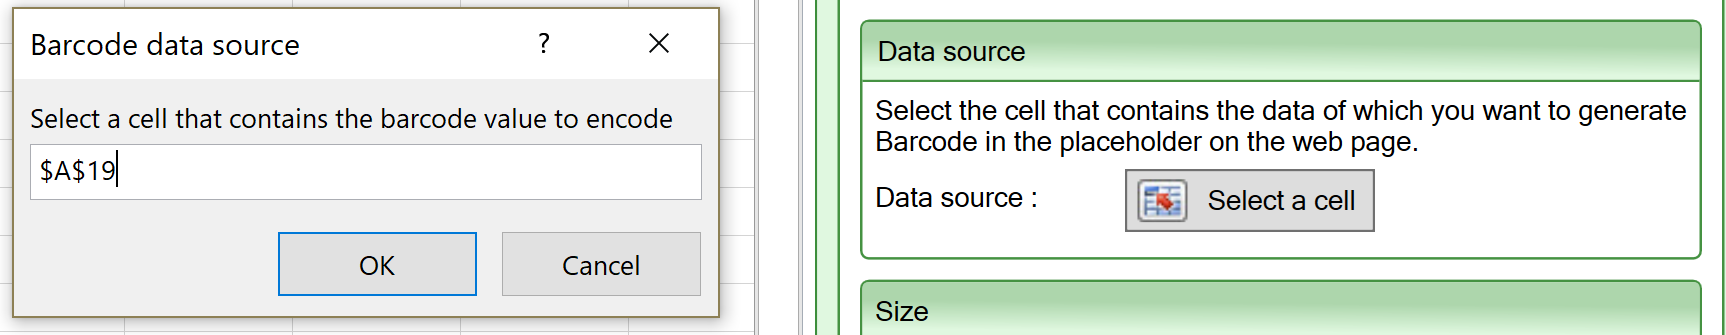 Screenshot of the Data source setting for the Barcode widget